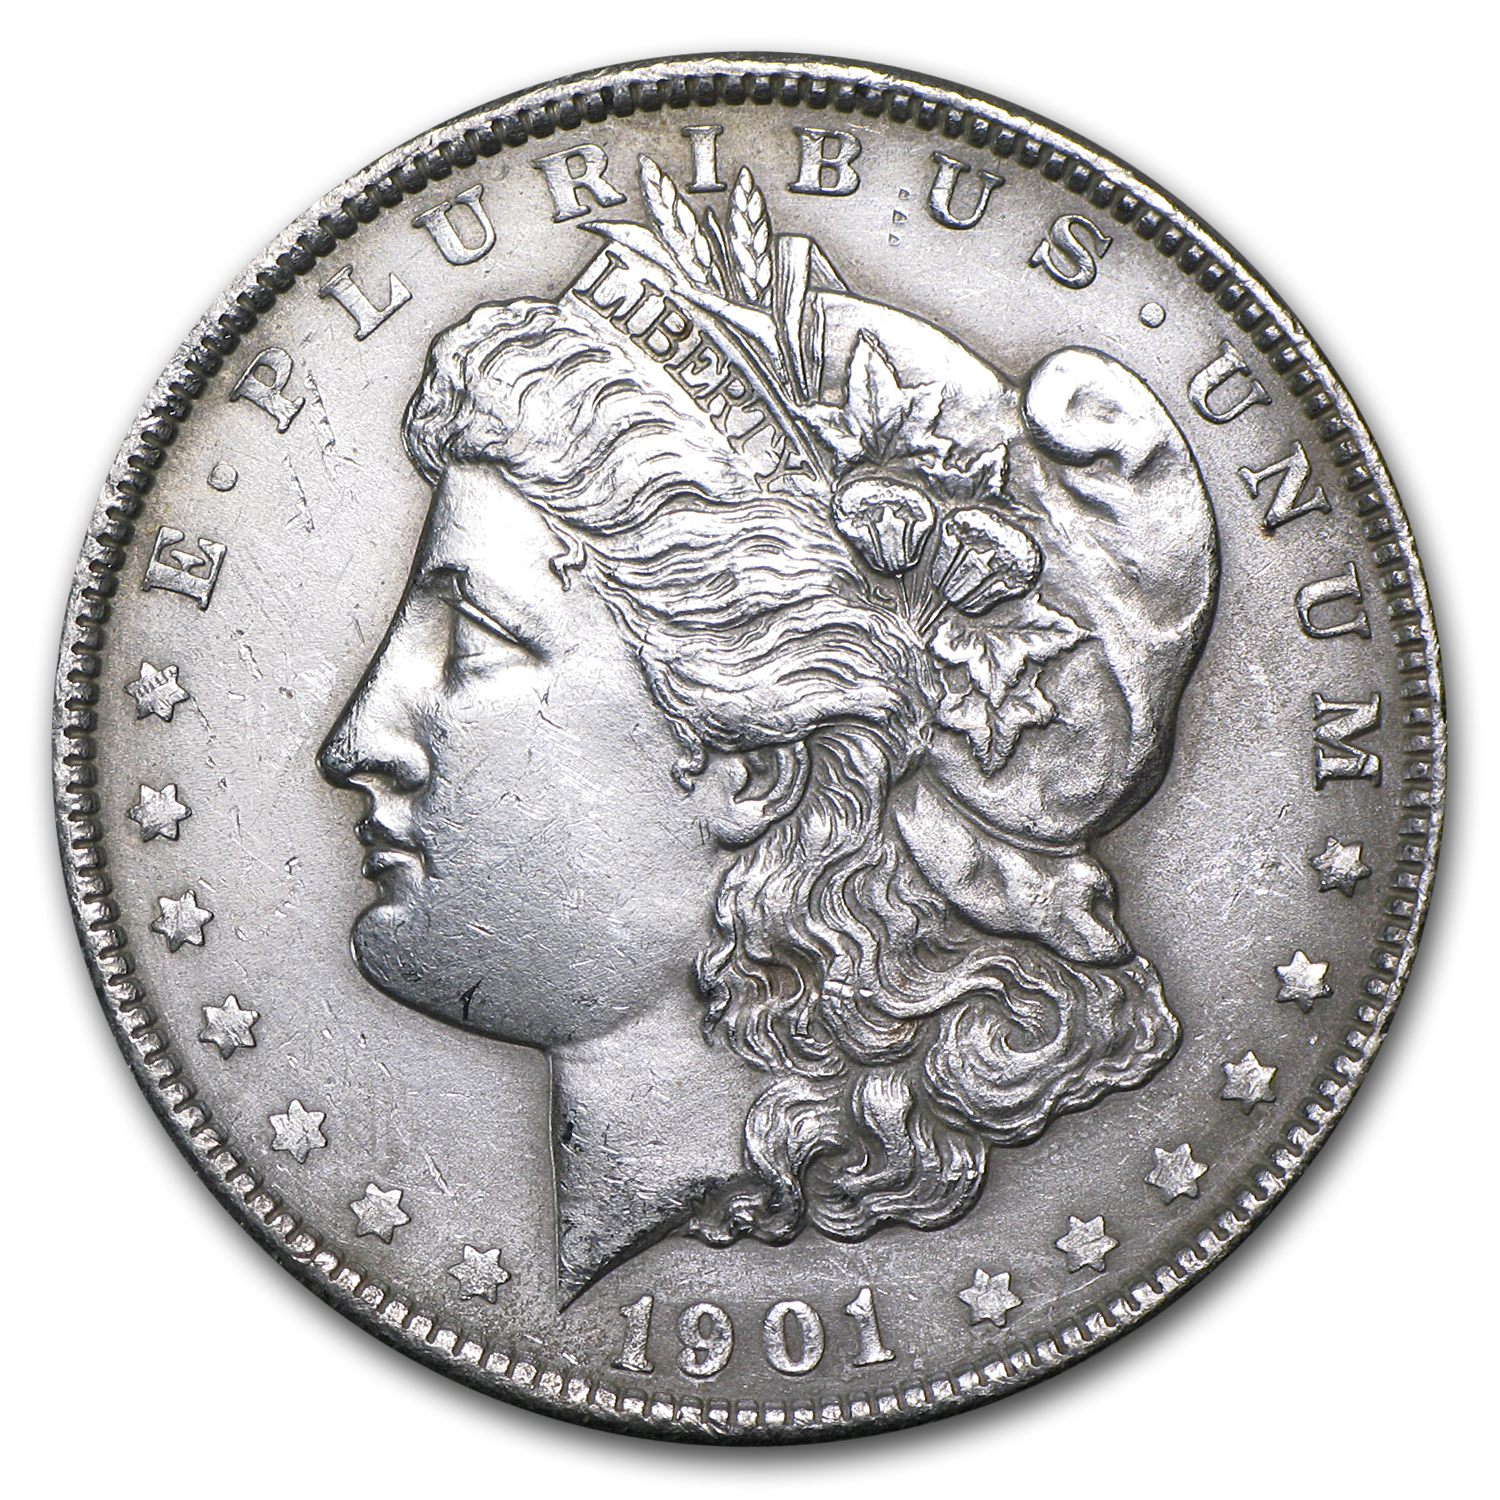 1901 Morgan Dollar - Brilliant Uncirculated - Cleaned